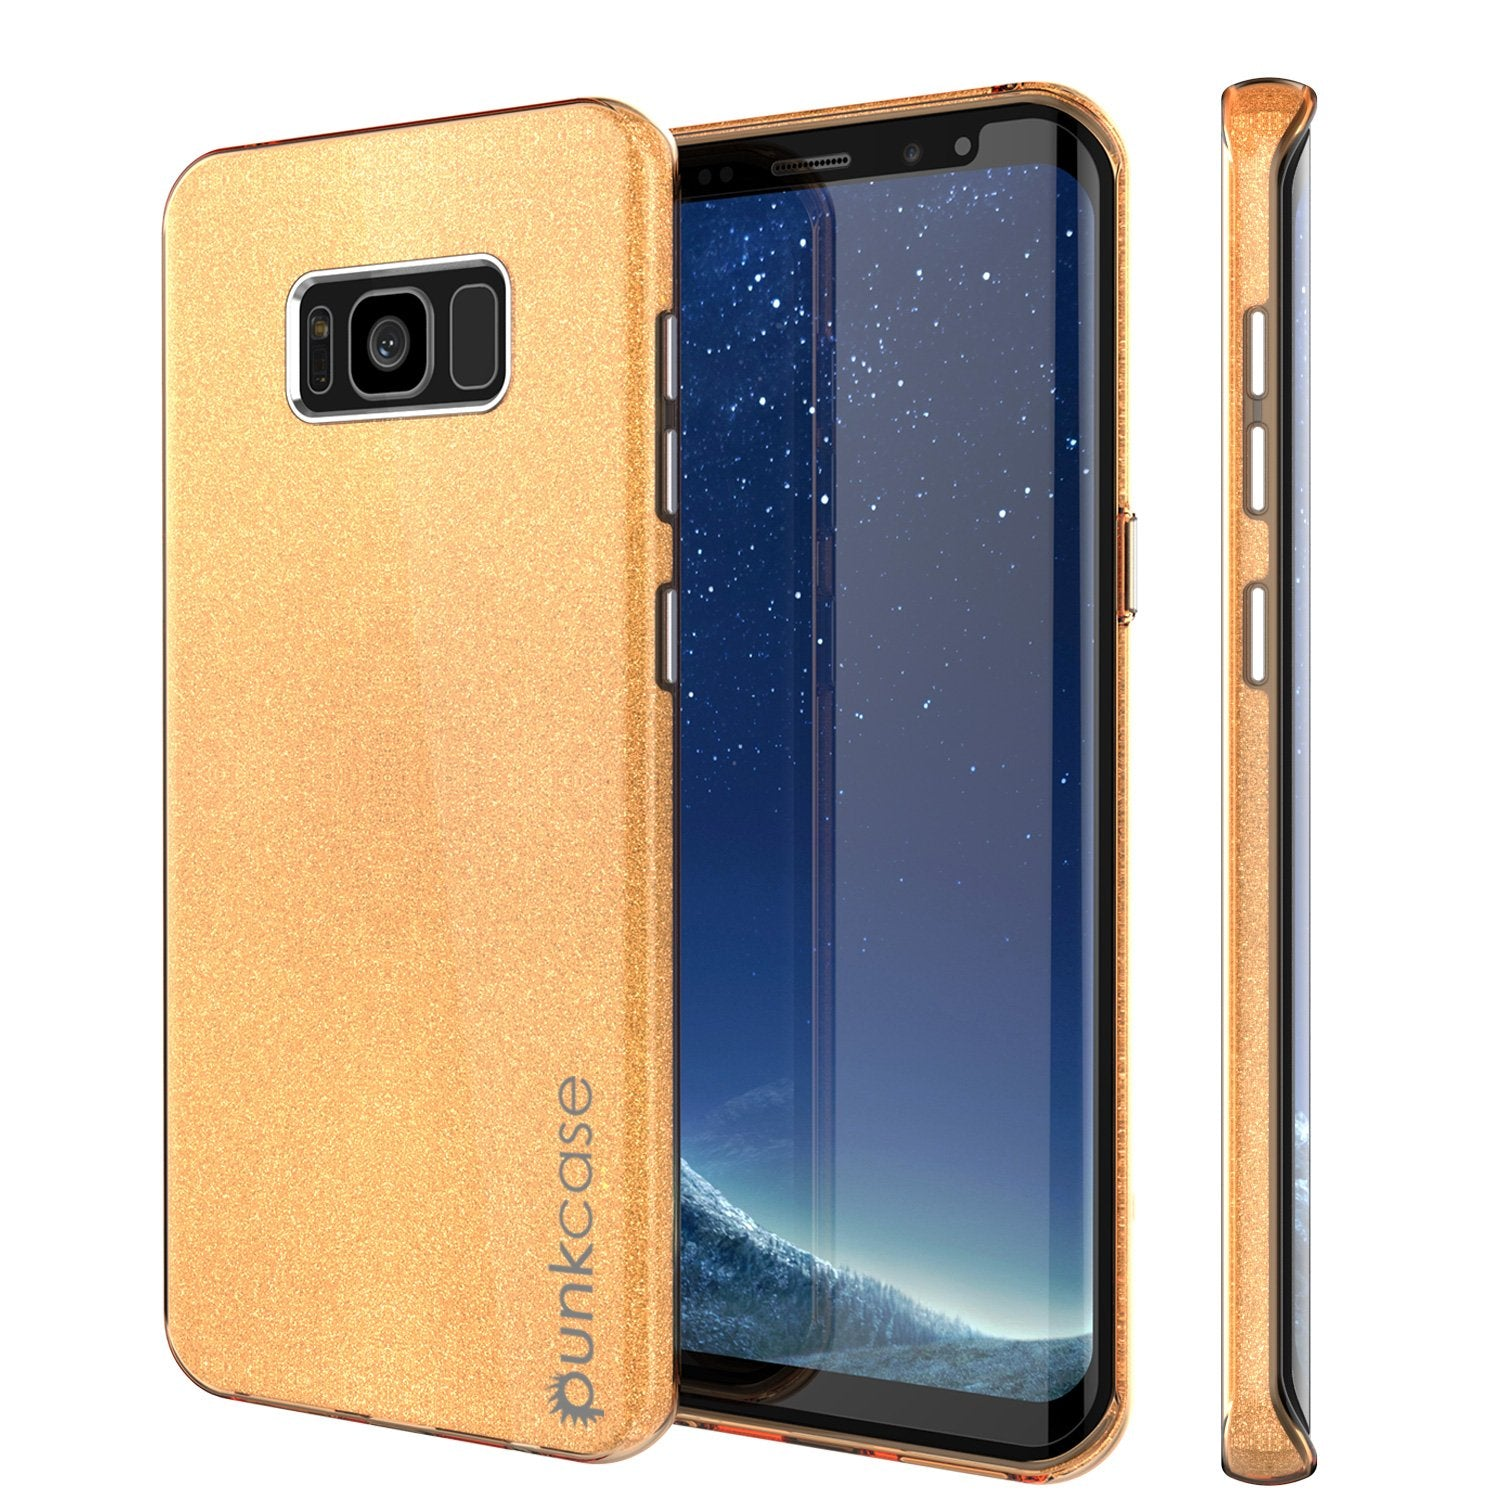 Galaxy S8 Case, Punkcase Galactic 2.0 Series Ultra Slim Protective Armor TPU Cover w/ PunkShield Screen Protector | Lifetime Exchange Warranty | Designed for Samsung Galaxy S8 [Gold]